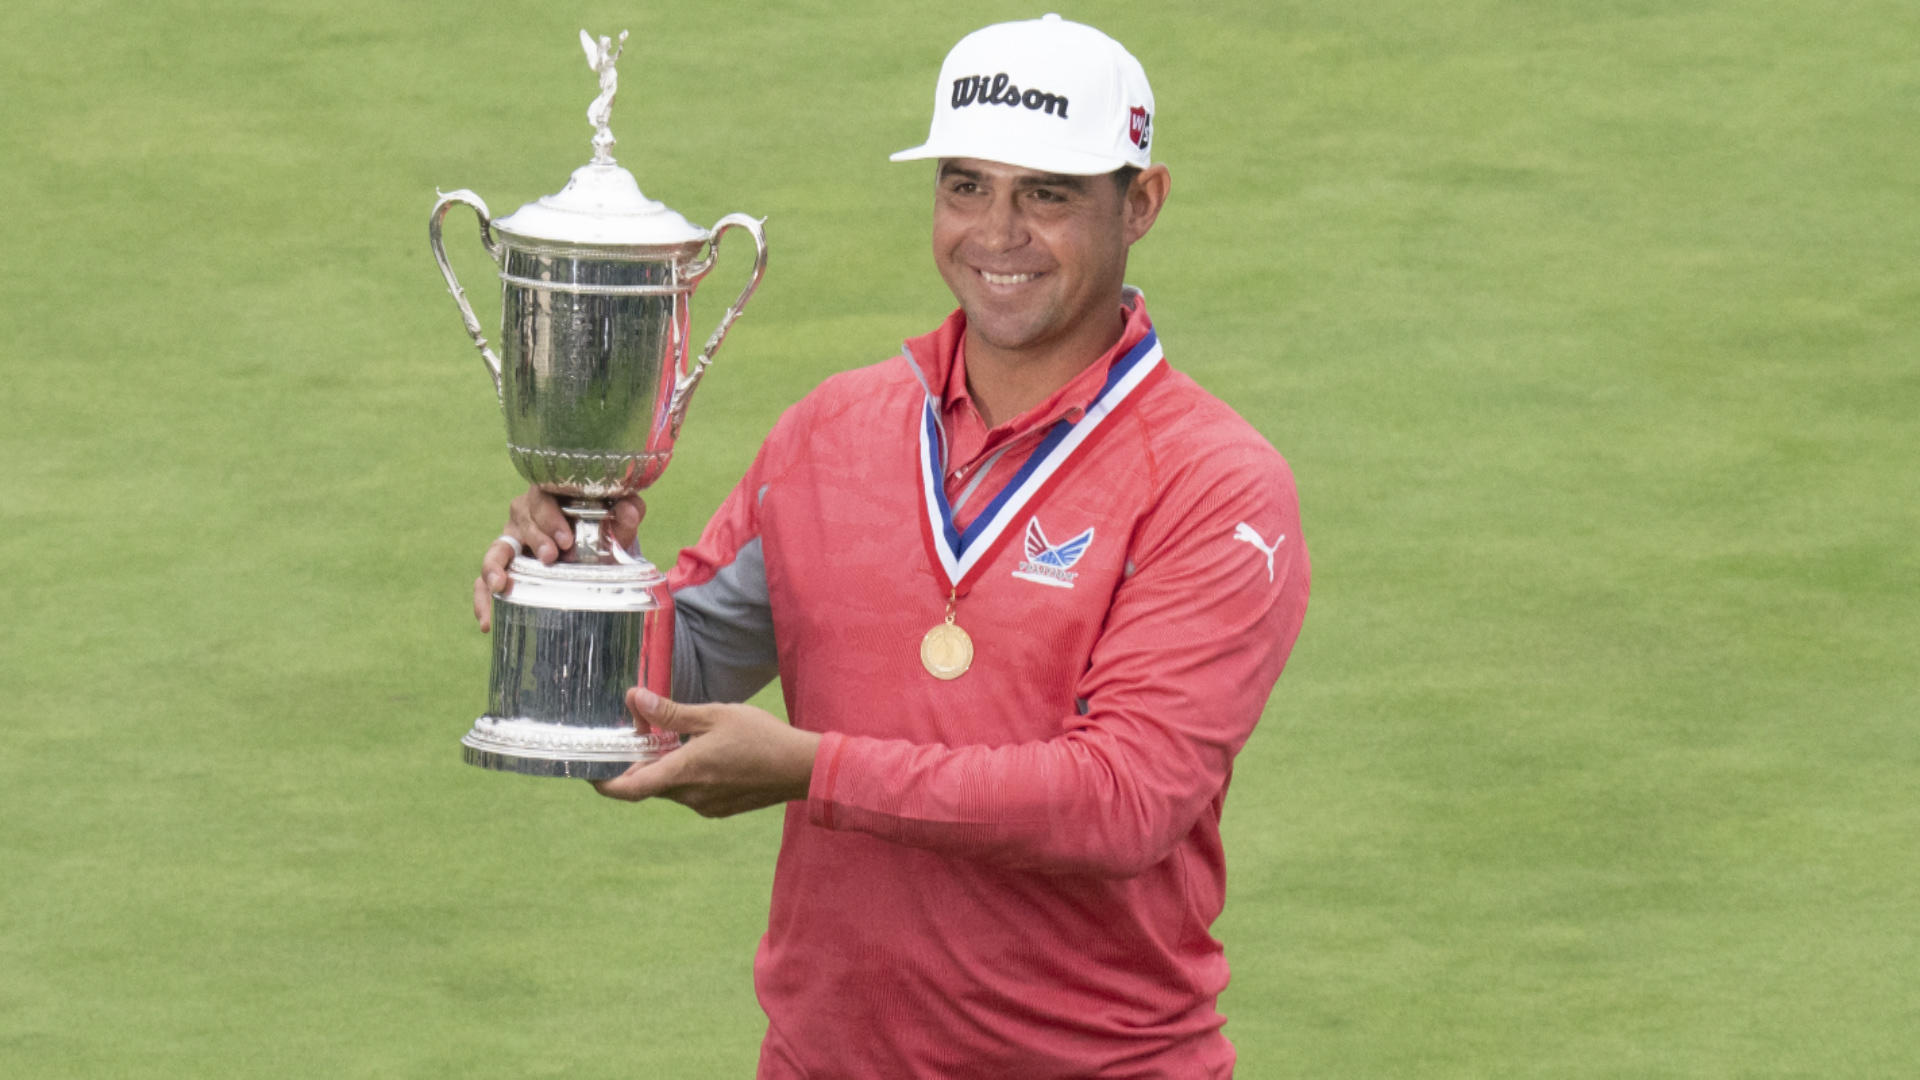 2019 U.S. Open leaderboard, winner: Gary Woodland dominates Pebble Beach for first major victory